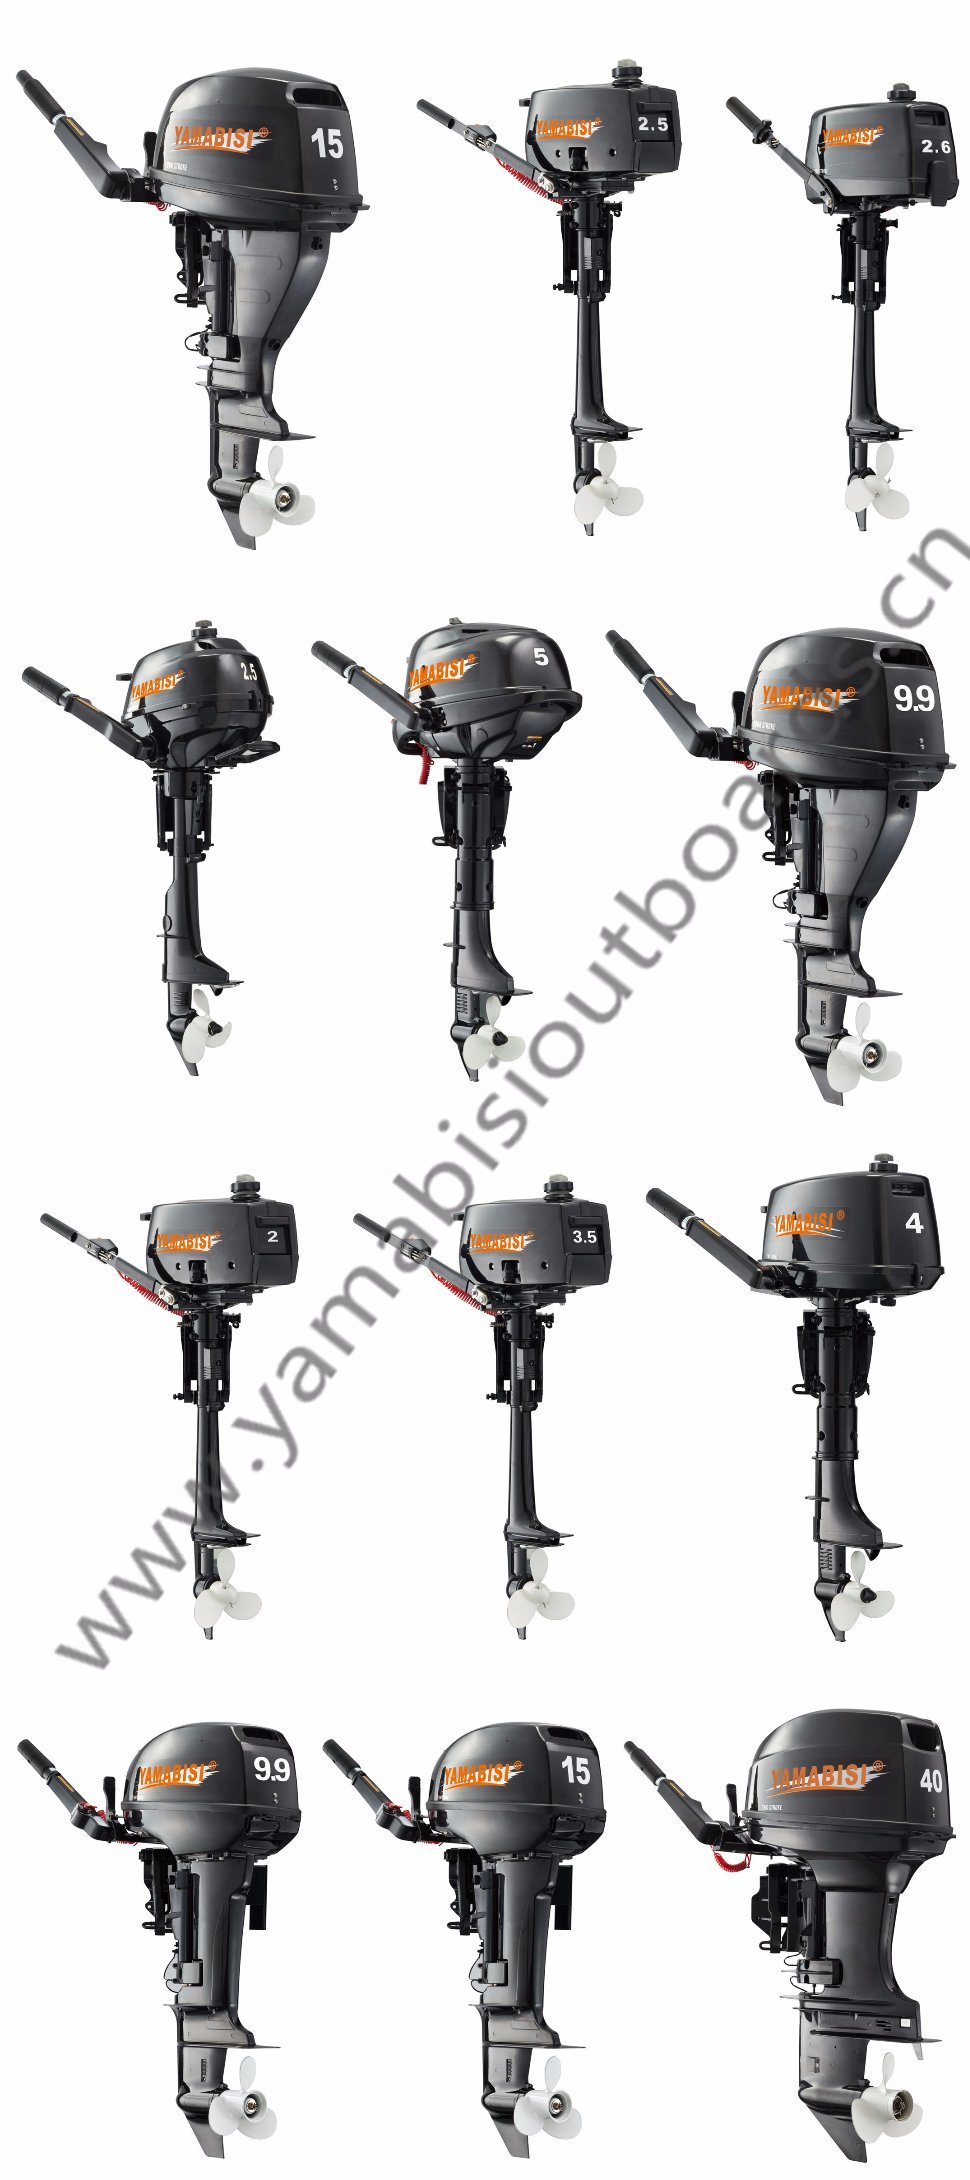 2 Stroke 40HP Yamabisi Outboard Motor/ Outboard Engine